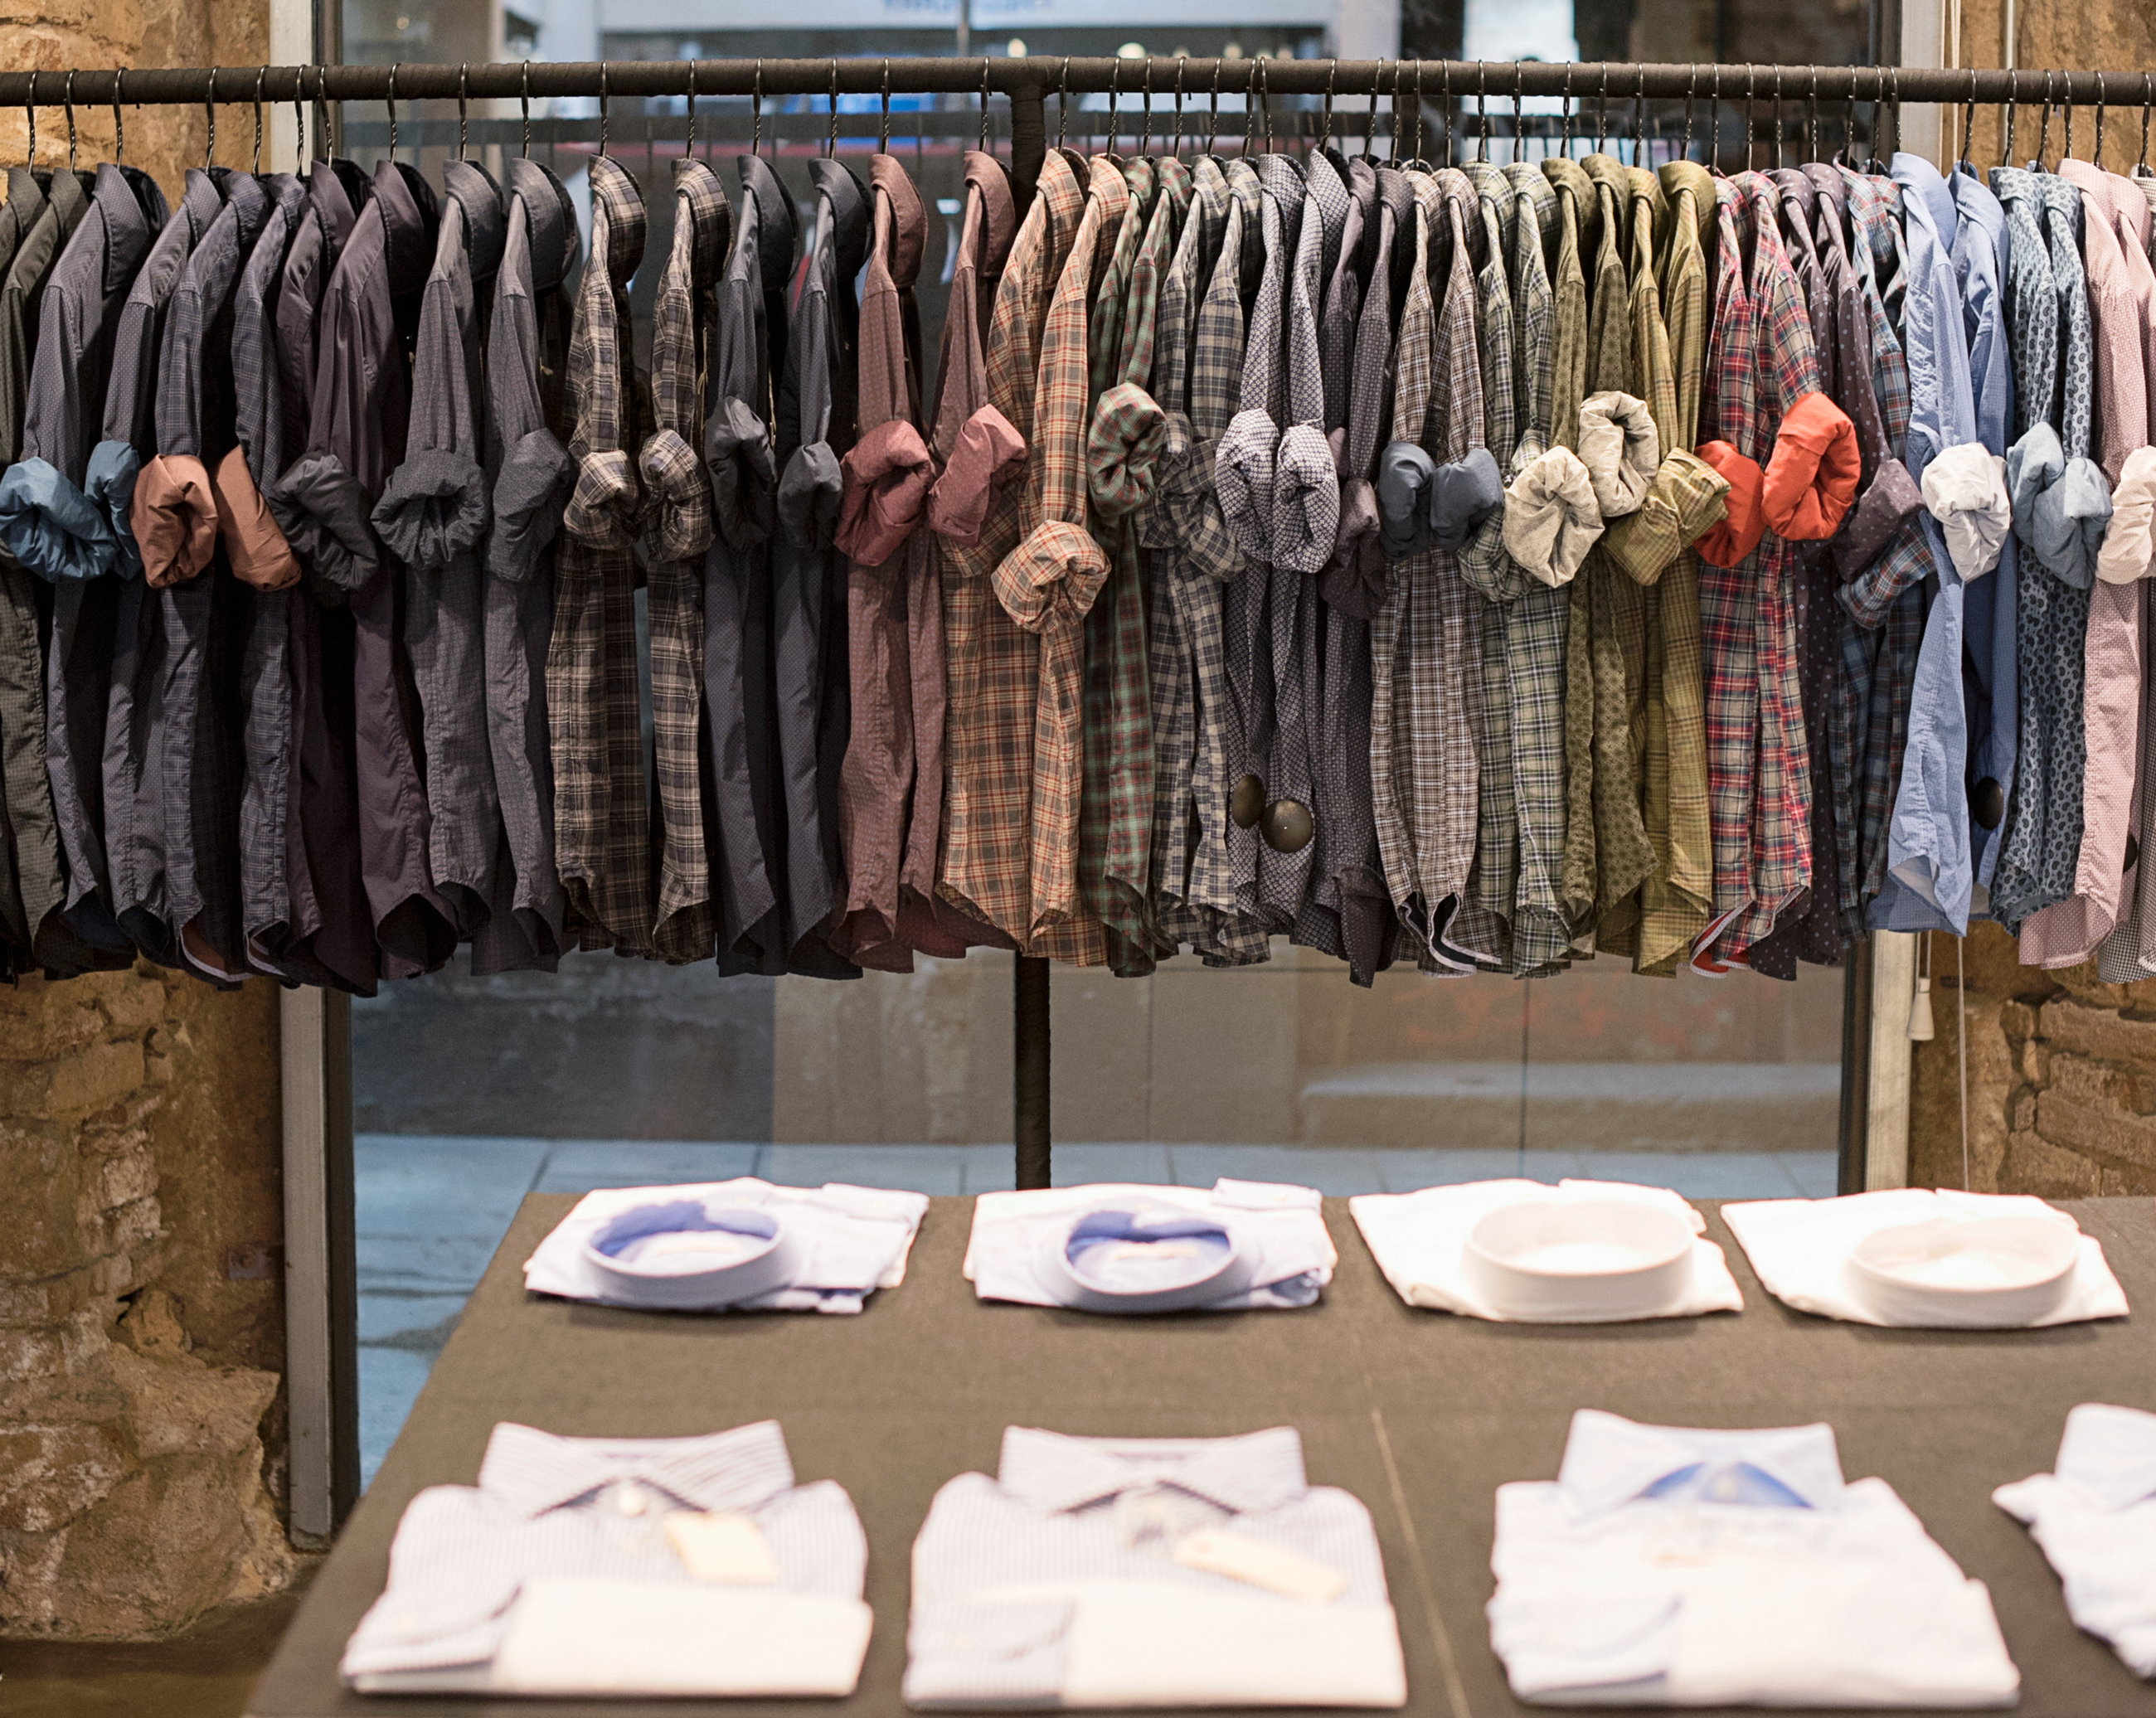 VNTANA Launches 3D Digital Showroom to help Fashion Brands Sell Online to Retailers